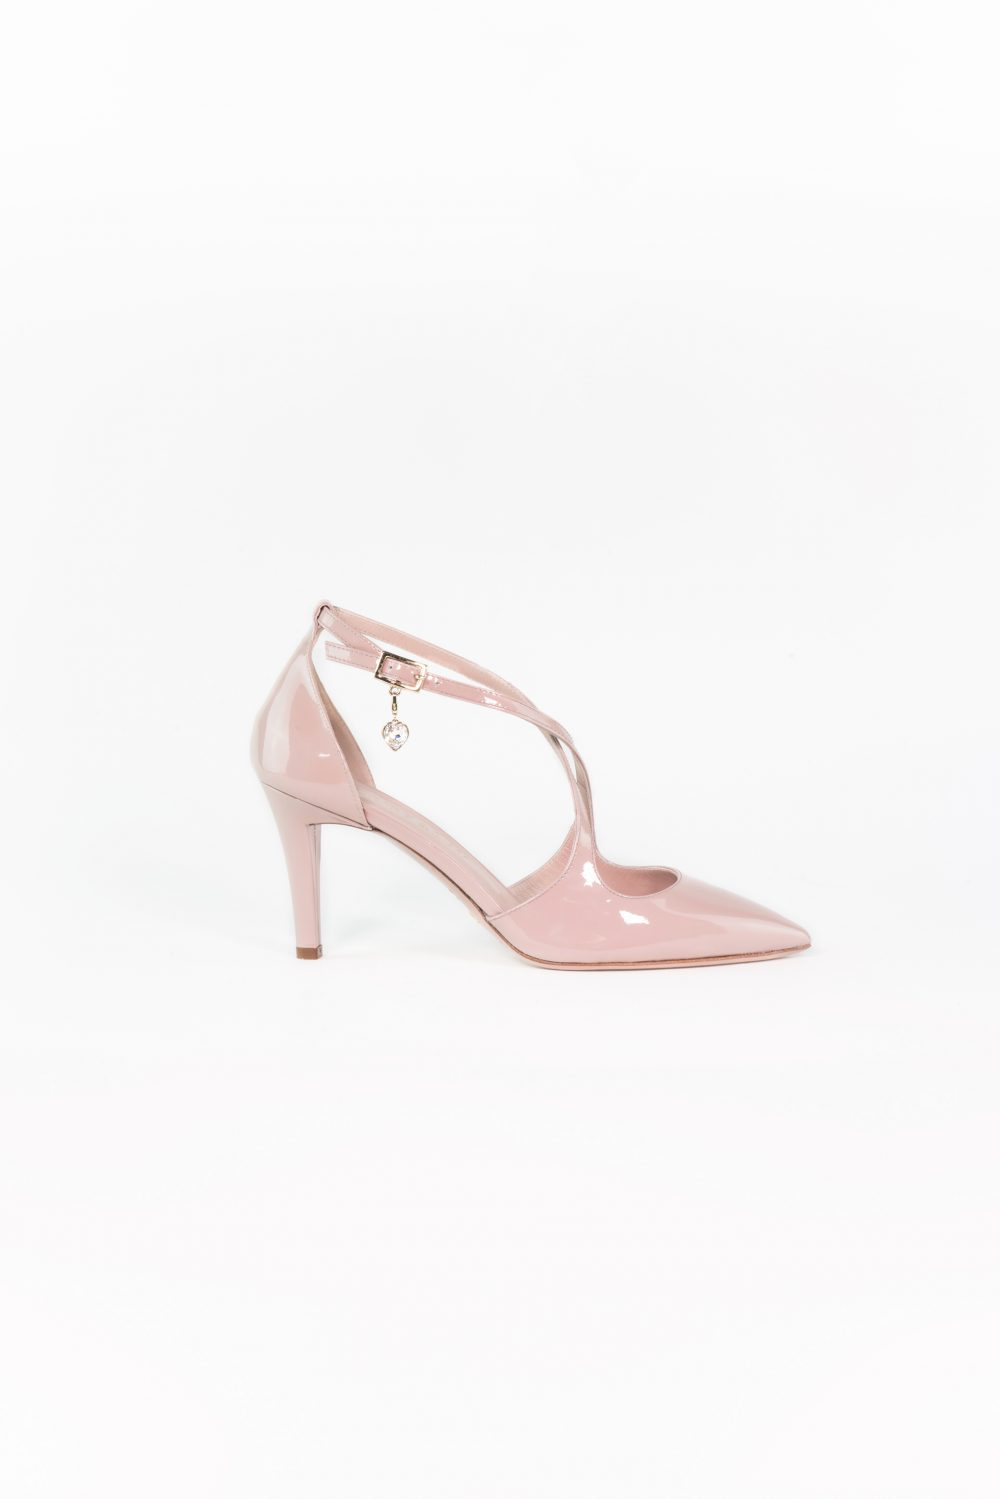 Abendschuh Sarah in dusty rose